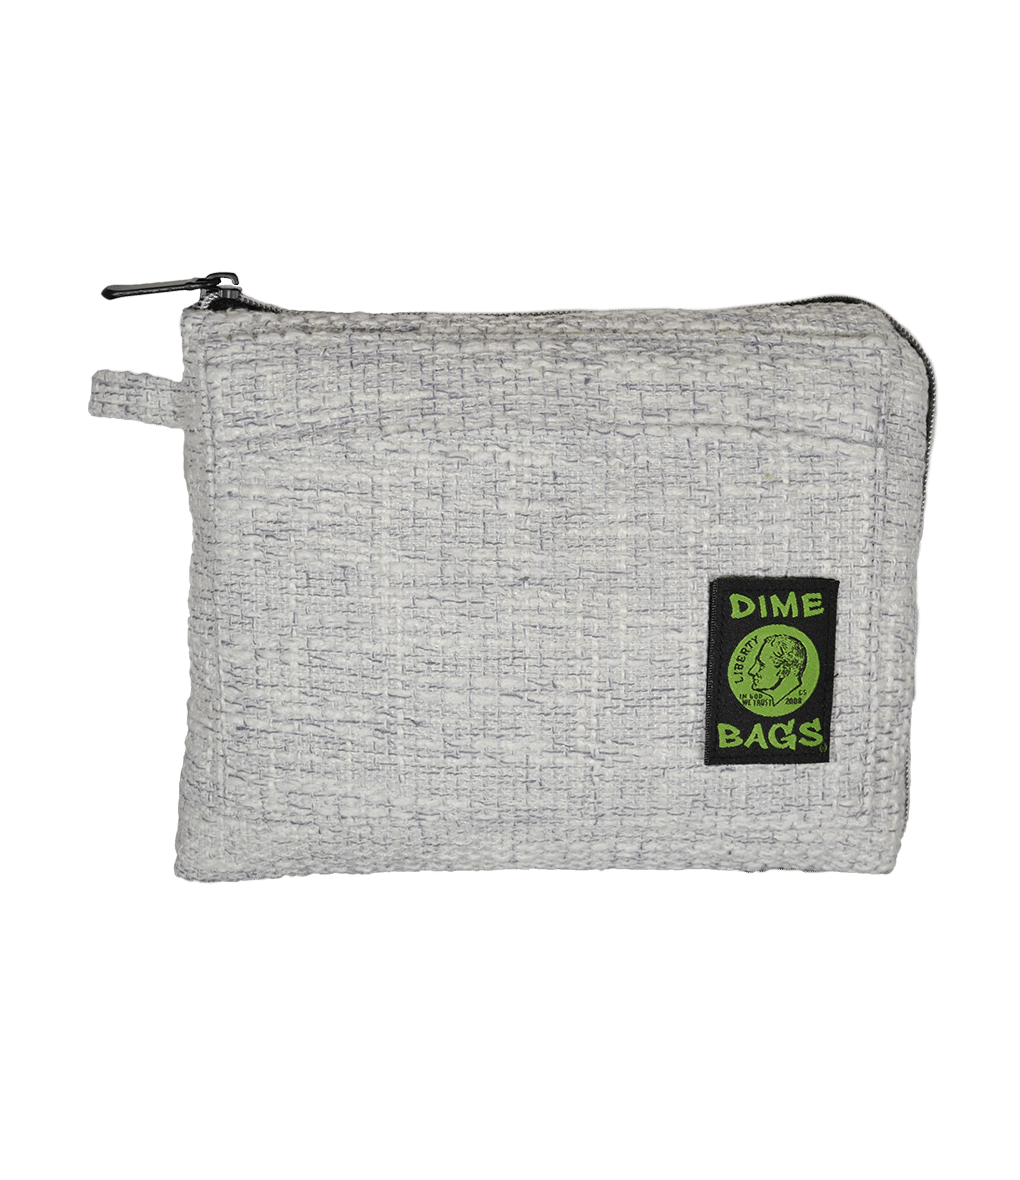 "Dime Bag - 10"" Pouch - Gray"